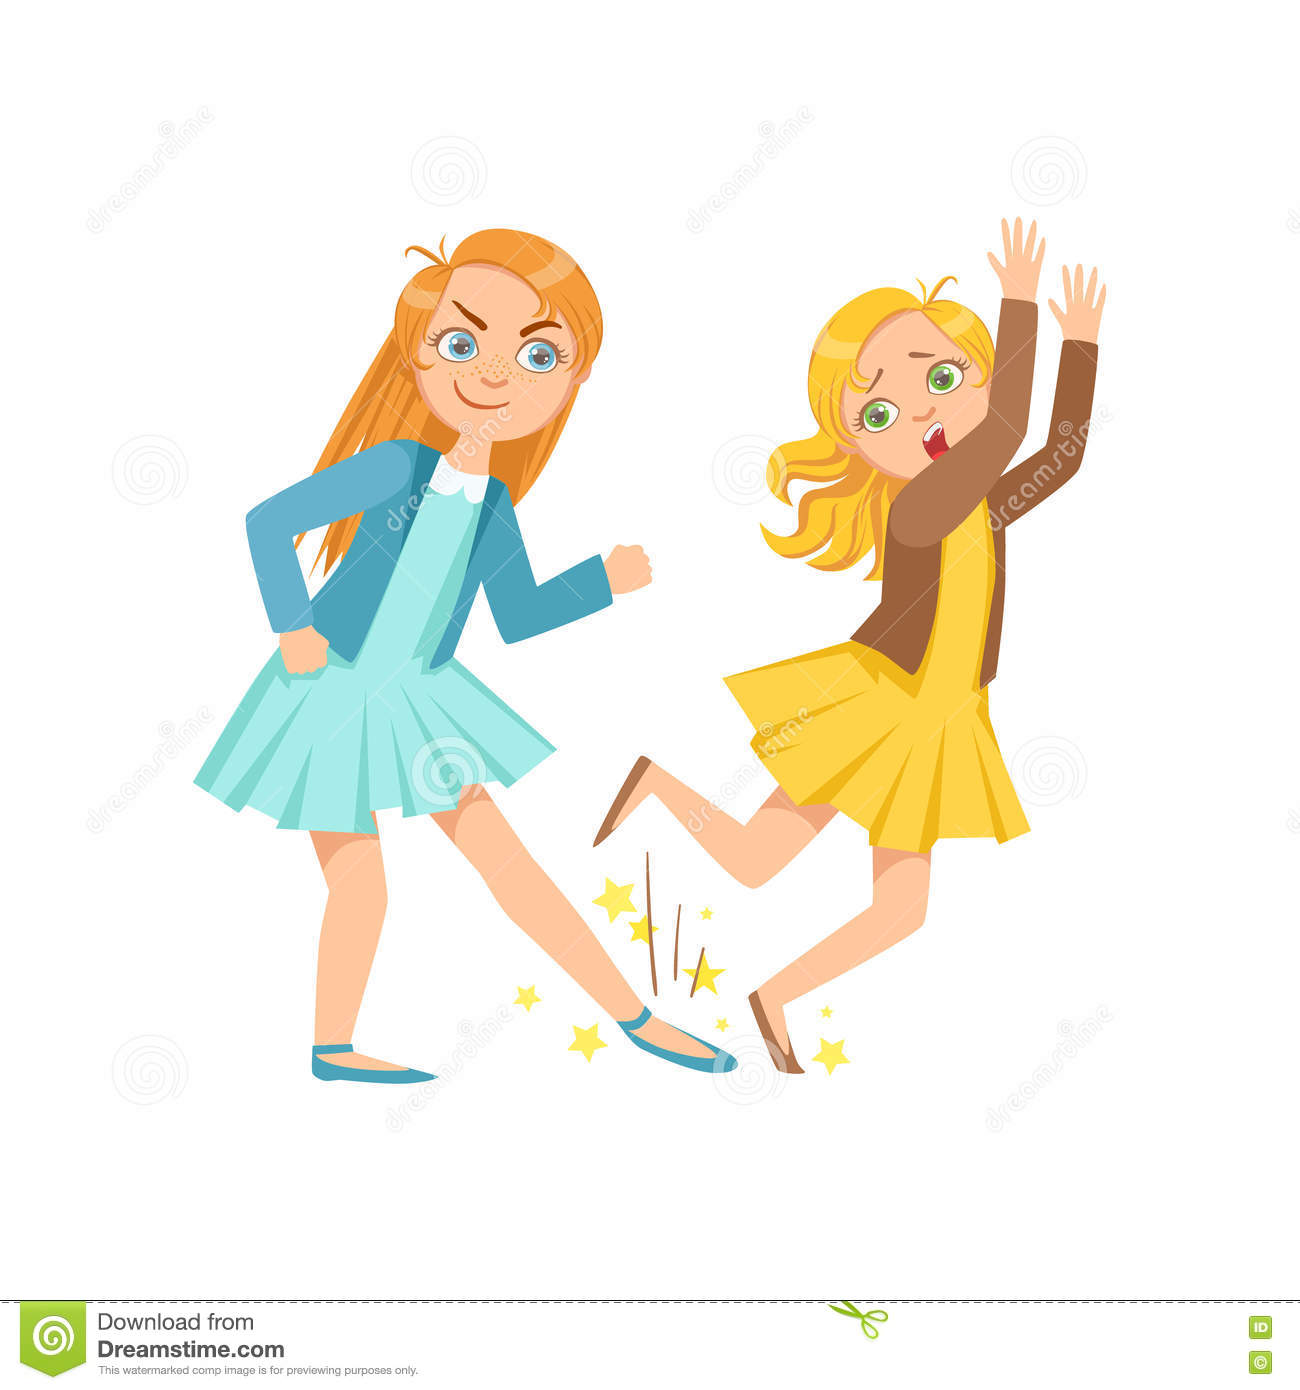 girl tripping smaller kid teenage bully demonstrating mischievous  uncontrollable delinquent behavior cartoon stock vector - illustration of  bully, taller: 81694125  dreamstime.com